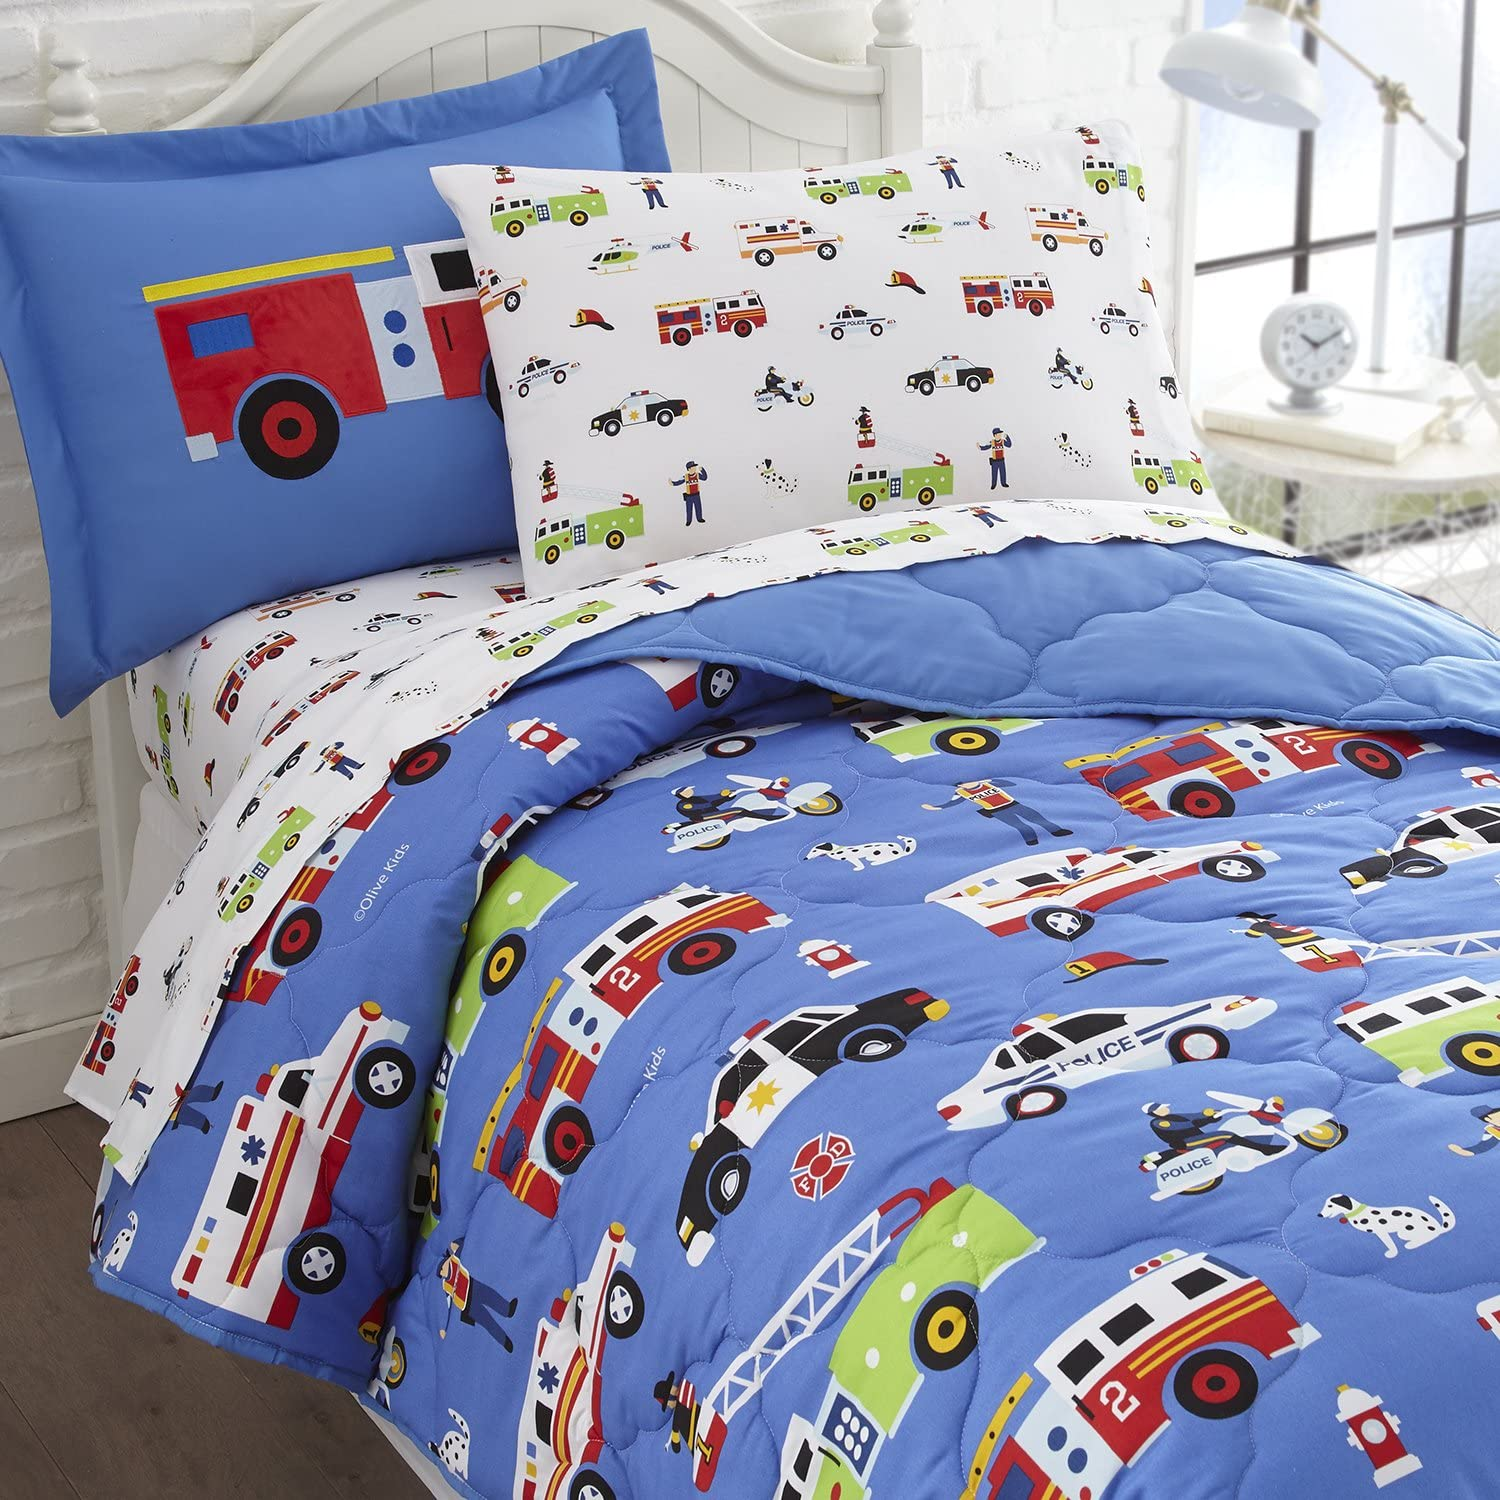 25% OFF Wildkin Kids 5 Pc Twin Bed OFFicial in A Bag for and Microfib Girls Boys